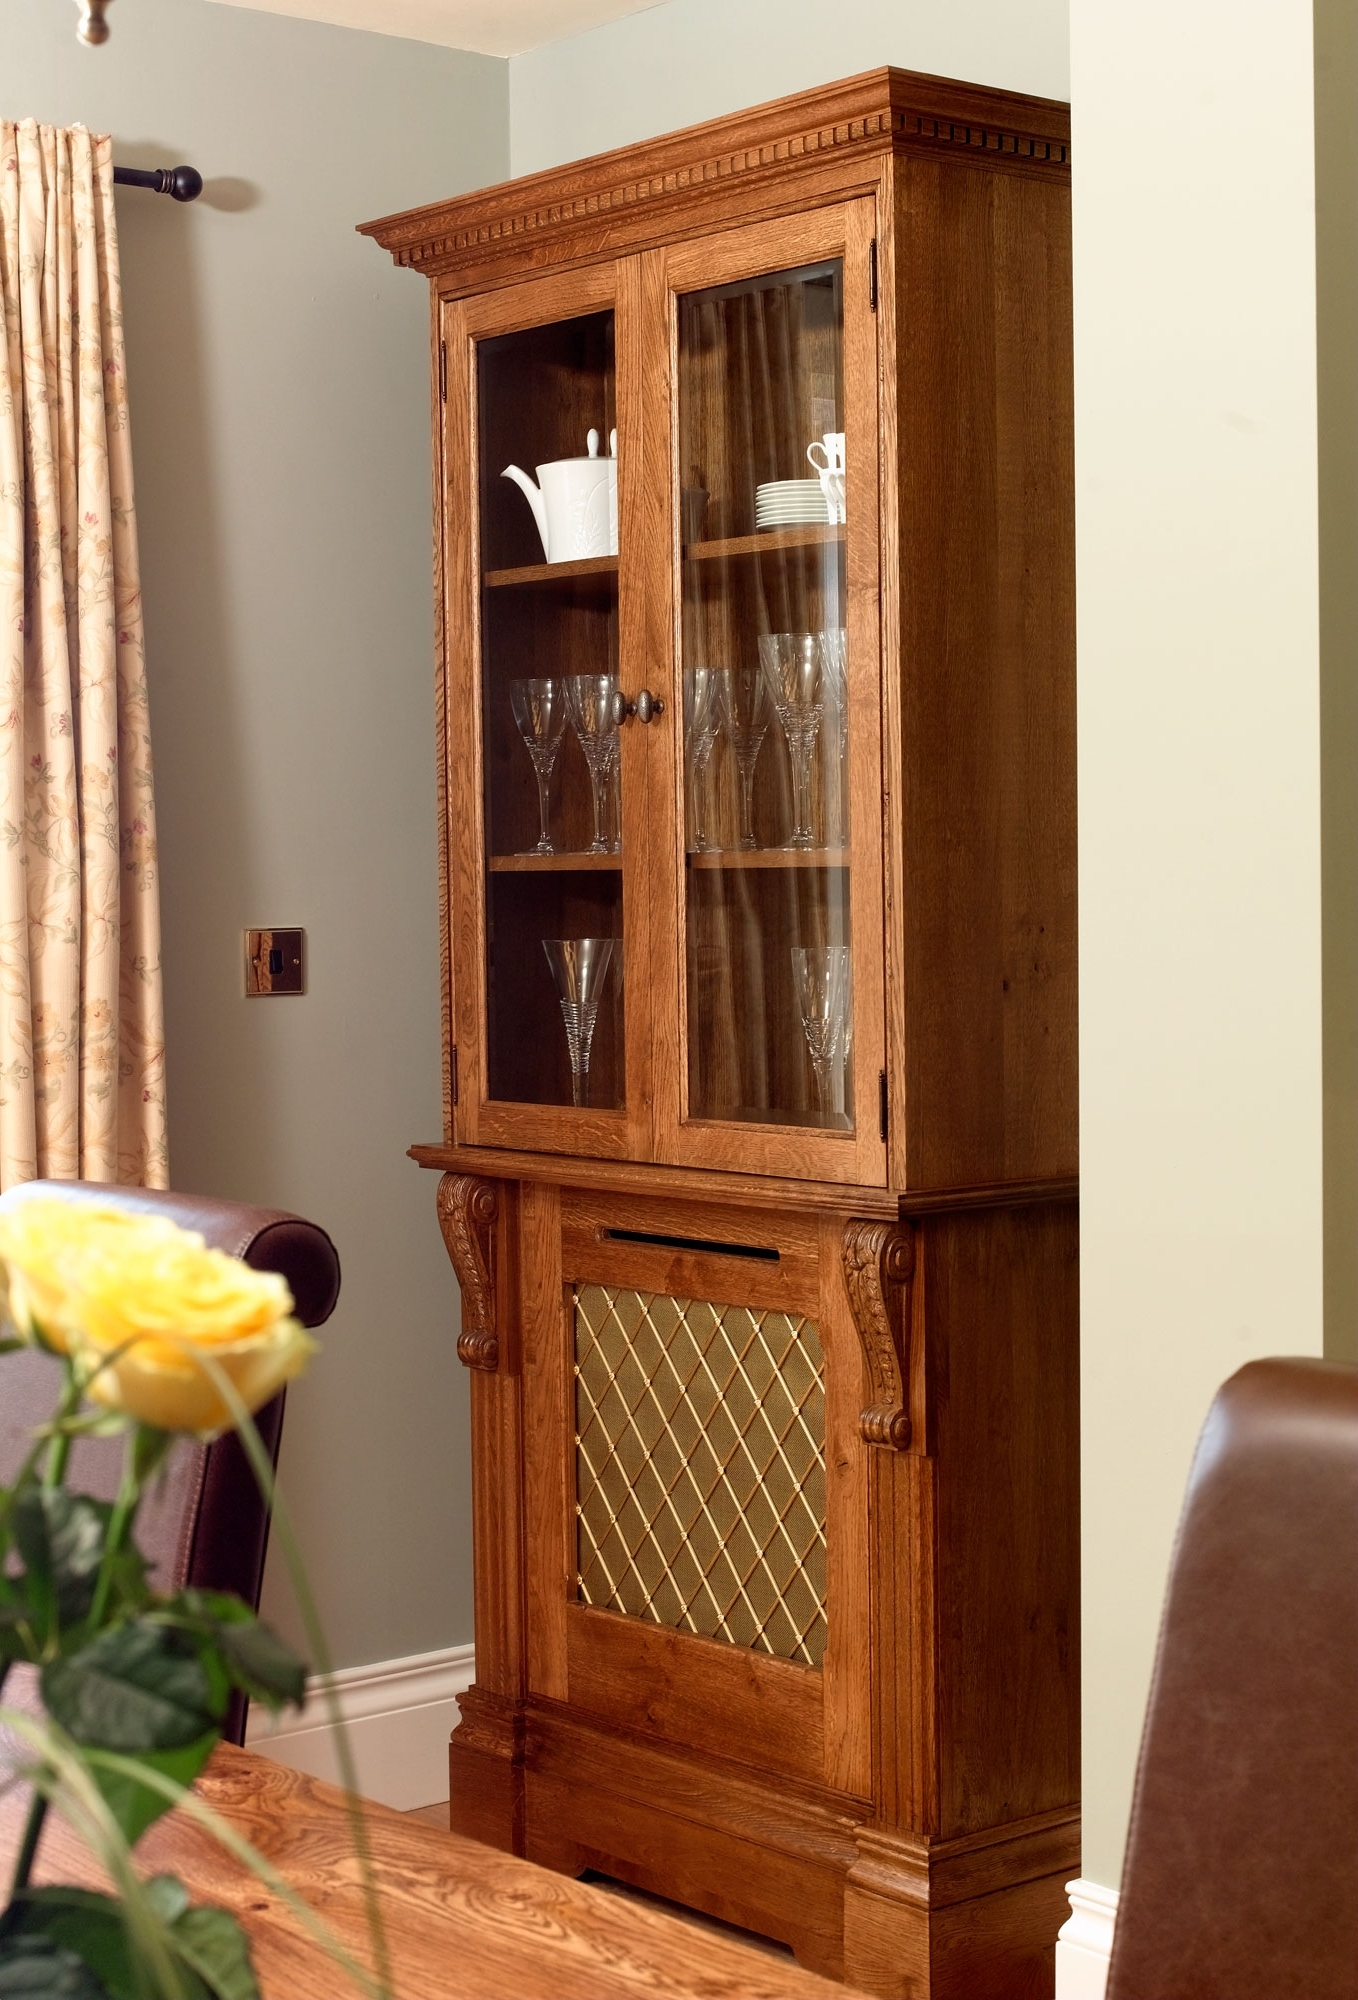 Bookcases – Radiator Cabinets – Radiator Covers With Bookcase Throughout Recent Radiator Cover Bookshelves (View 9 of 15)